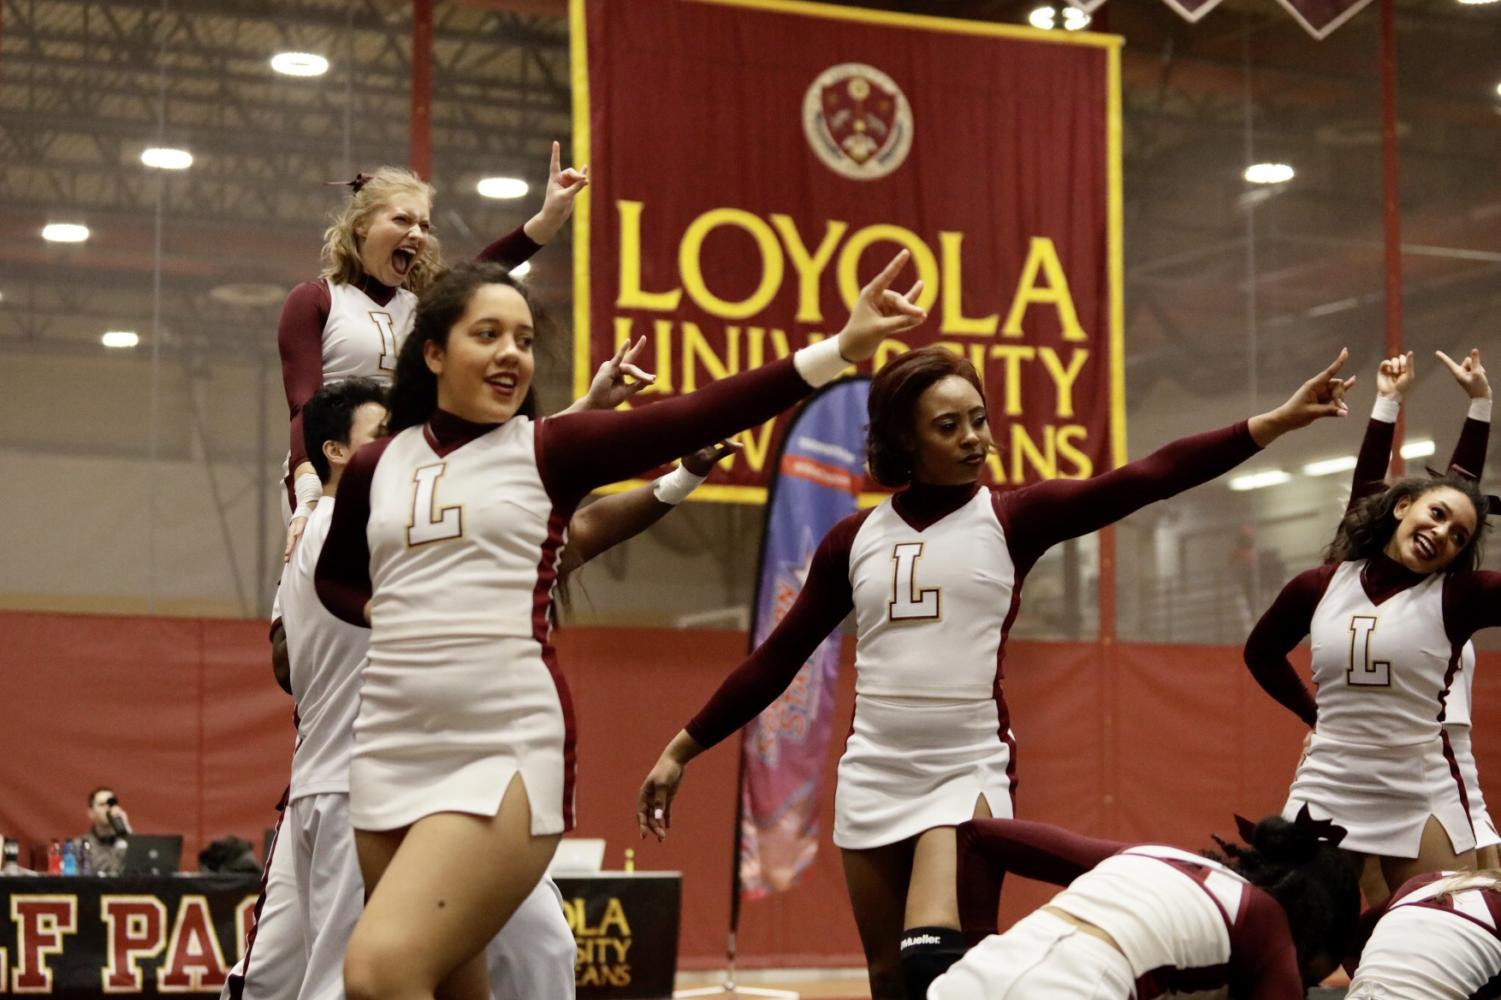 Loyola's cheer team performs their routine at the Southern States Athletics Conference Championship in The Den. The cheer team placed third at the regional meet and the dance team placed fourth. Photo credit: Ariel Landry